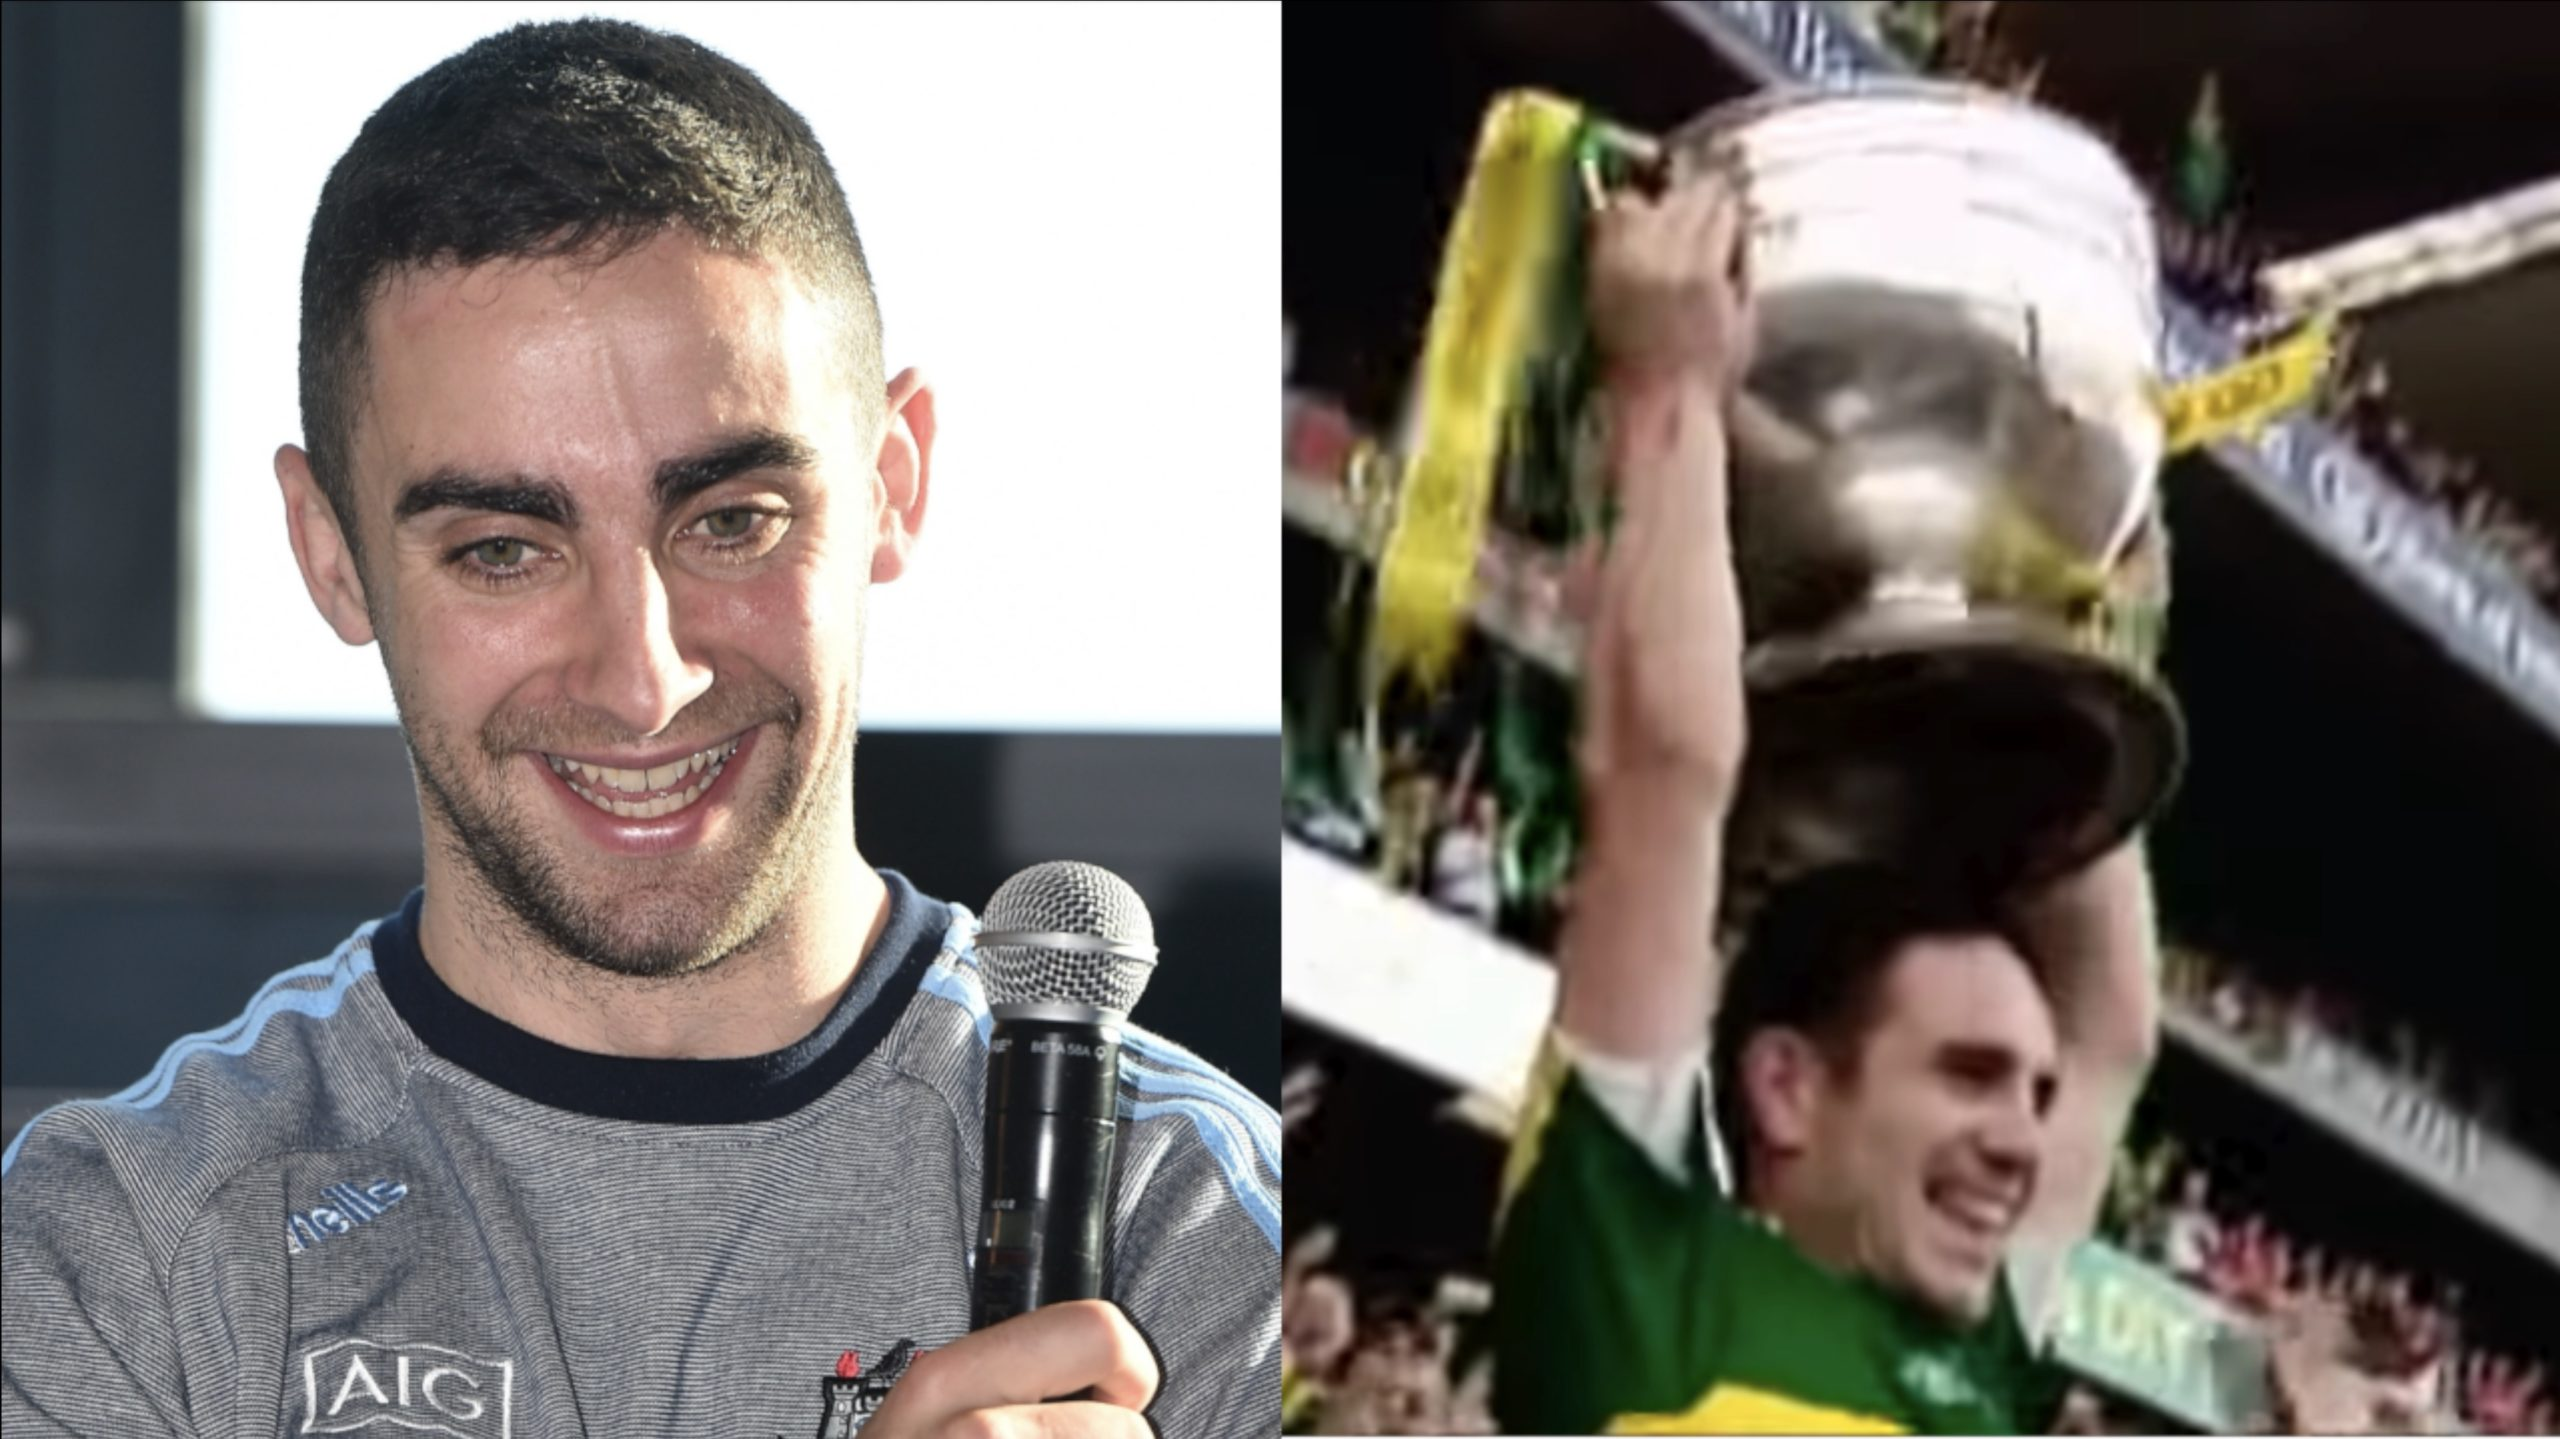 James McCarthy and Declan O'Sullivan